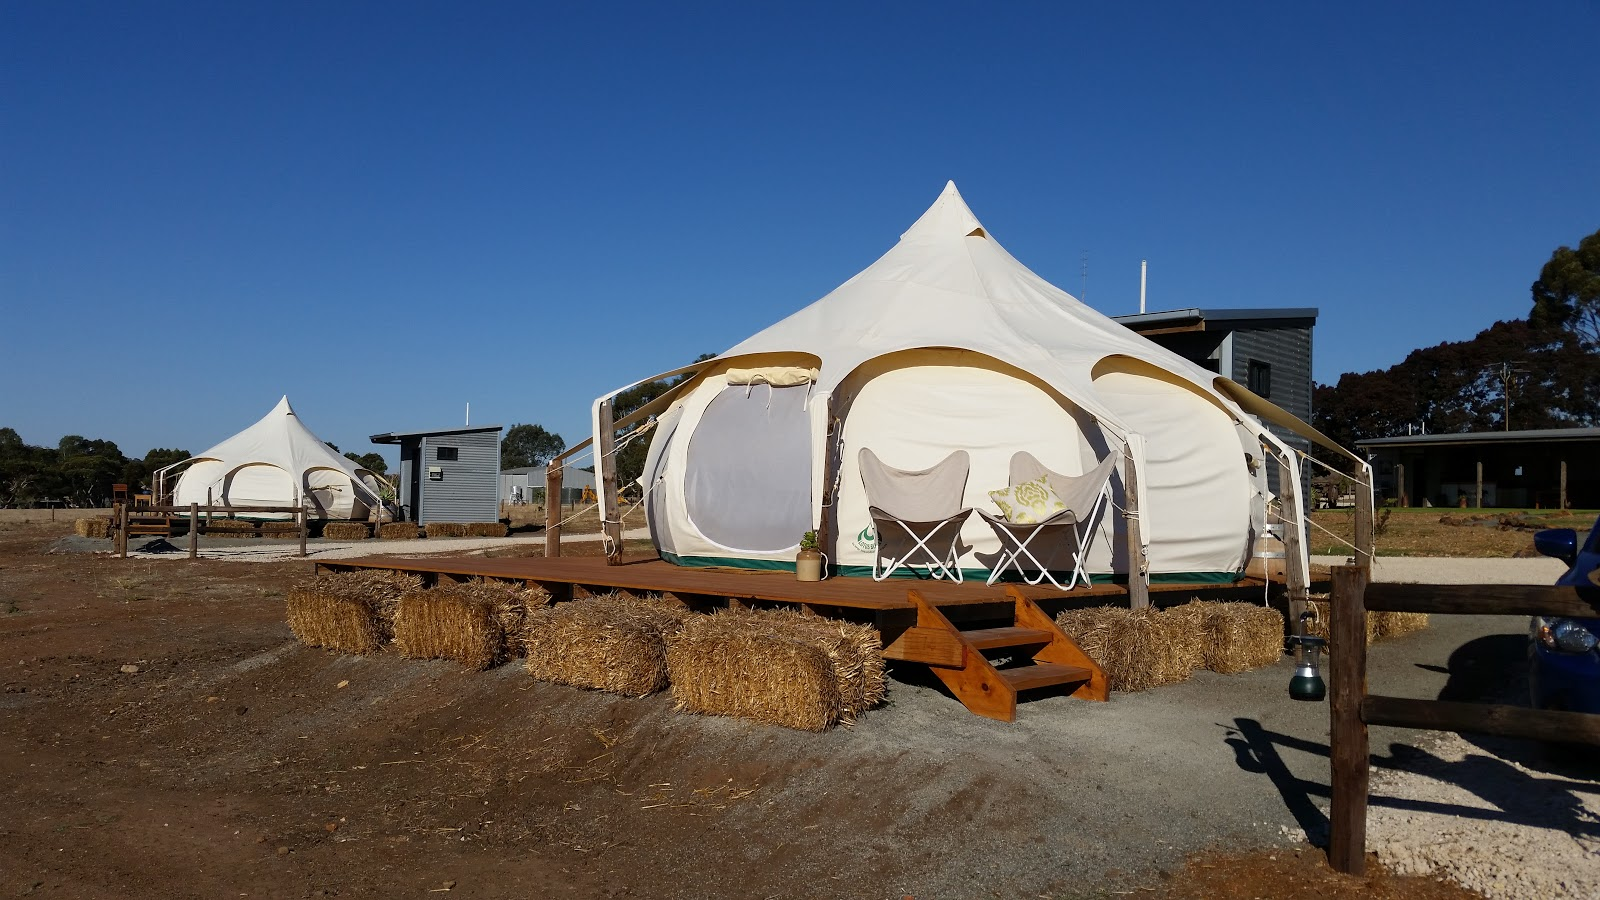 Bukirk Glamping - Camping in Style, Clare Valley, South ...